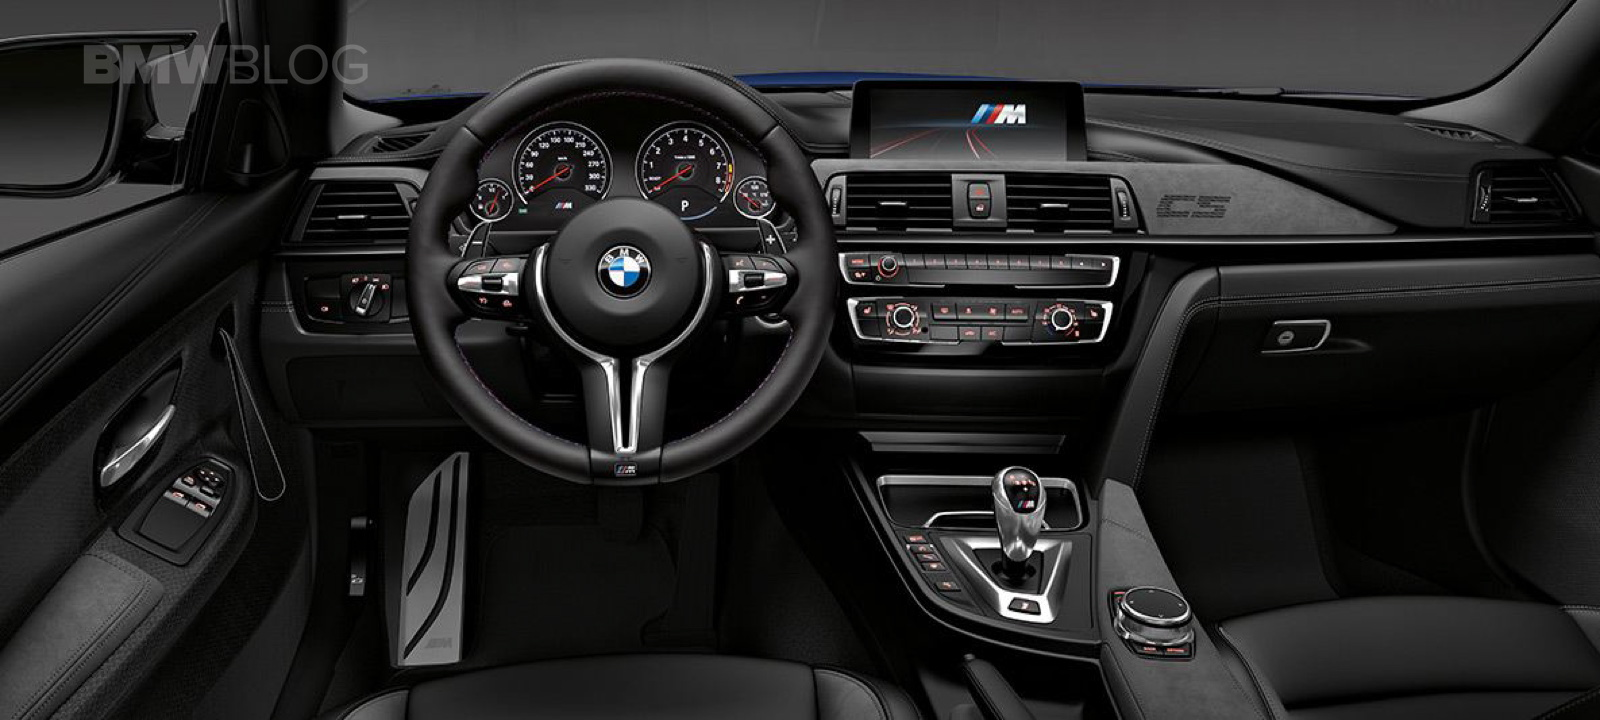 Where Is Bmw Made >> Wallpapers: BMW M4 CS